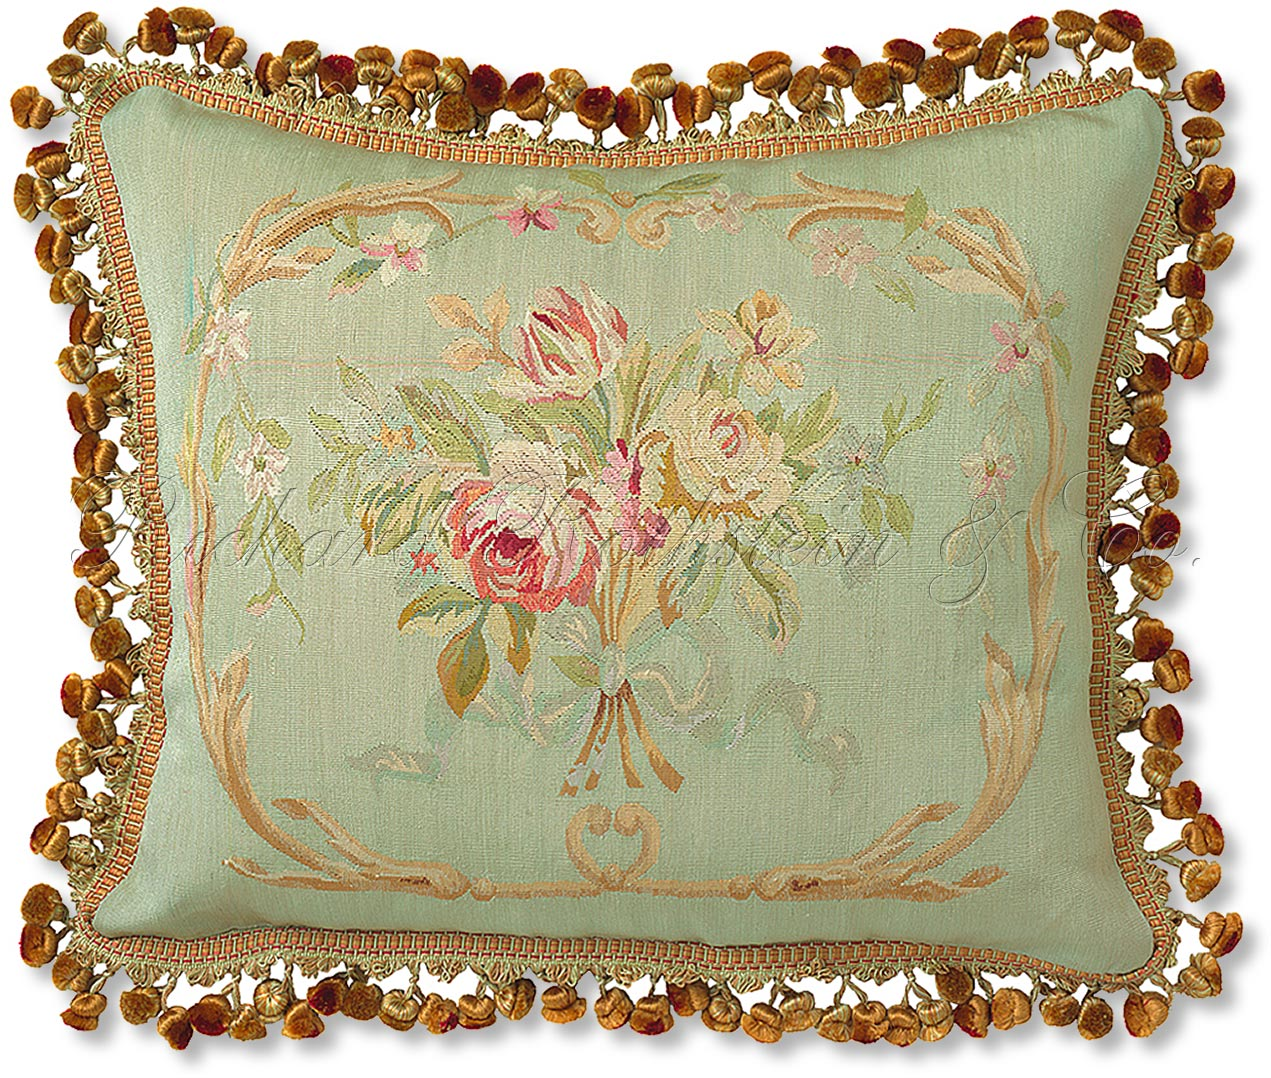 Remarkable Aubusson Rugs | Lovely Aubusson Carpet Wikipedia